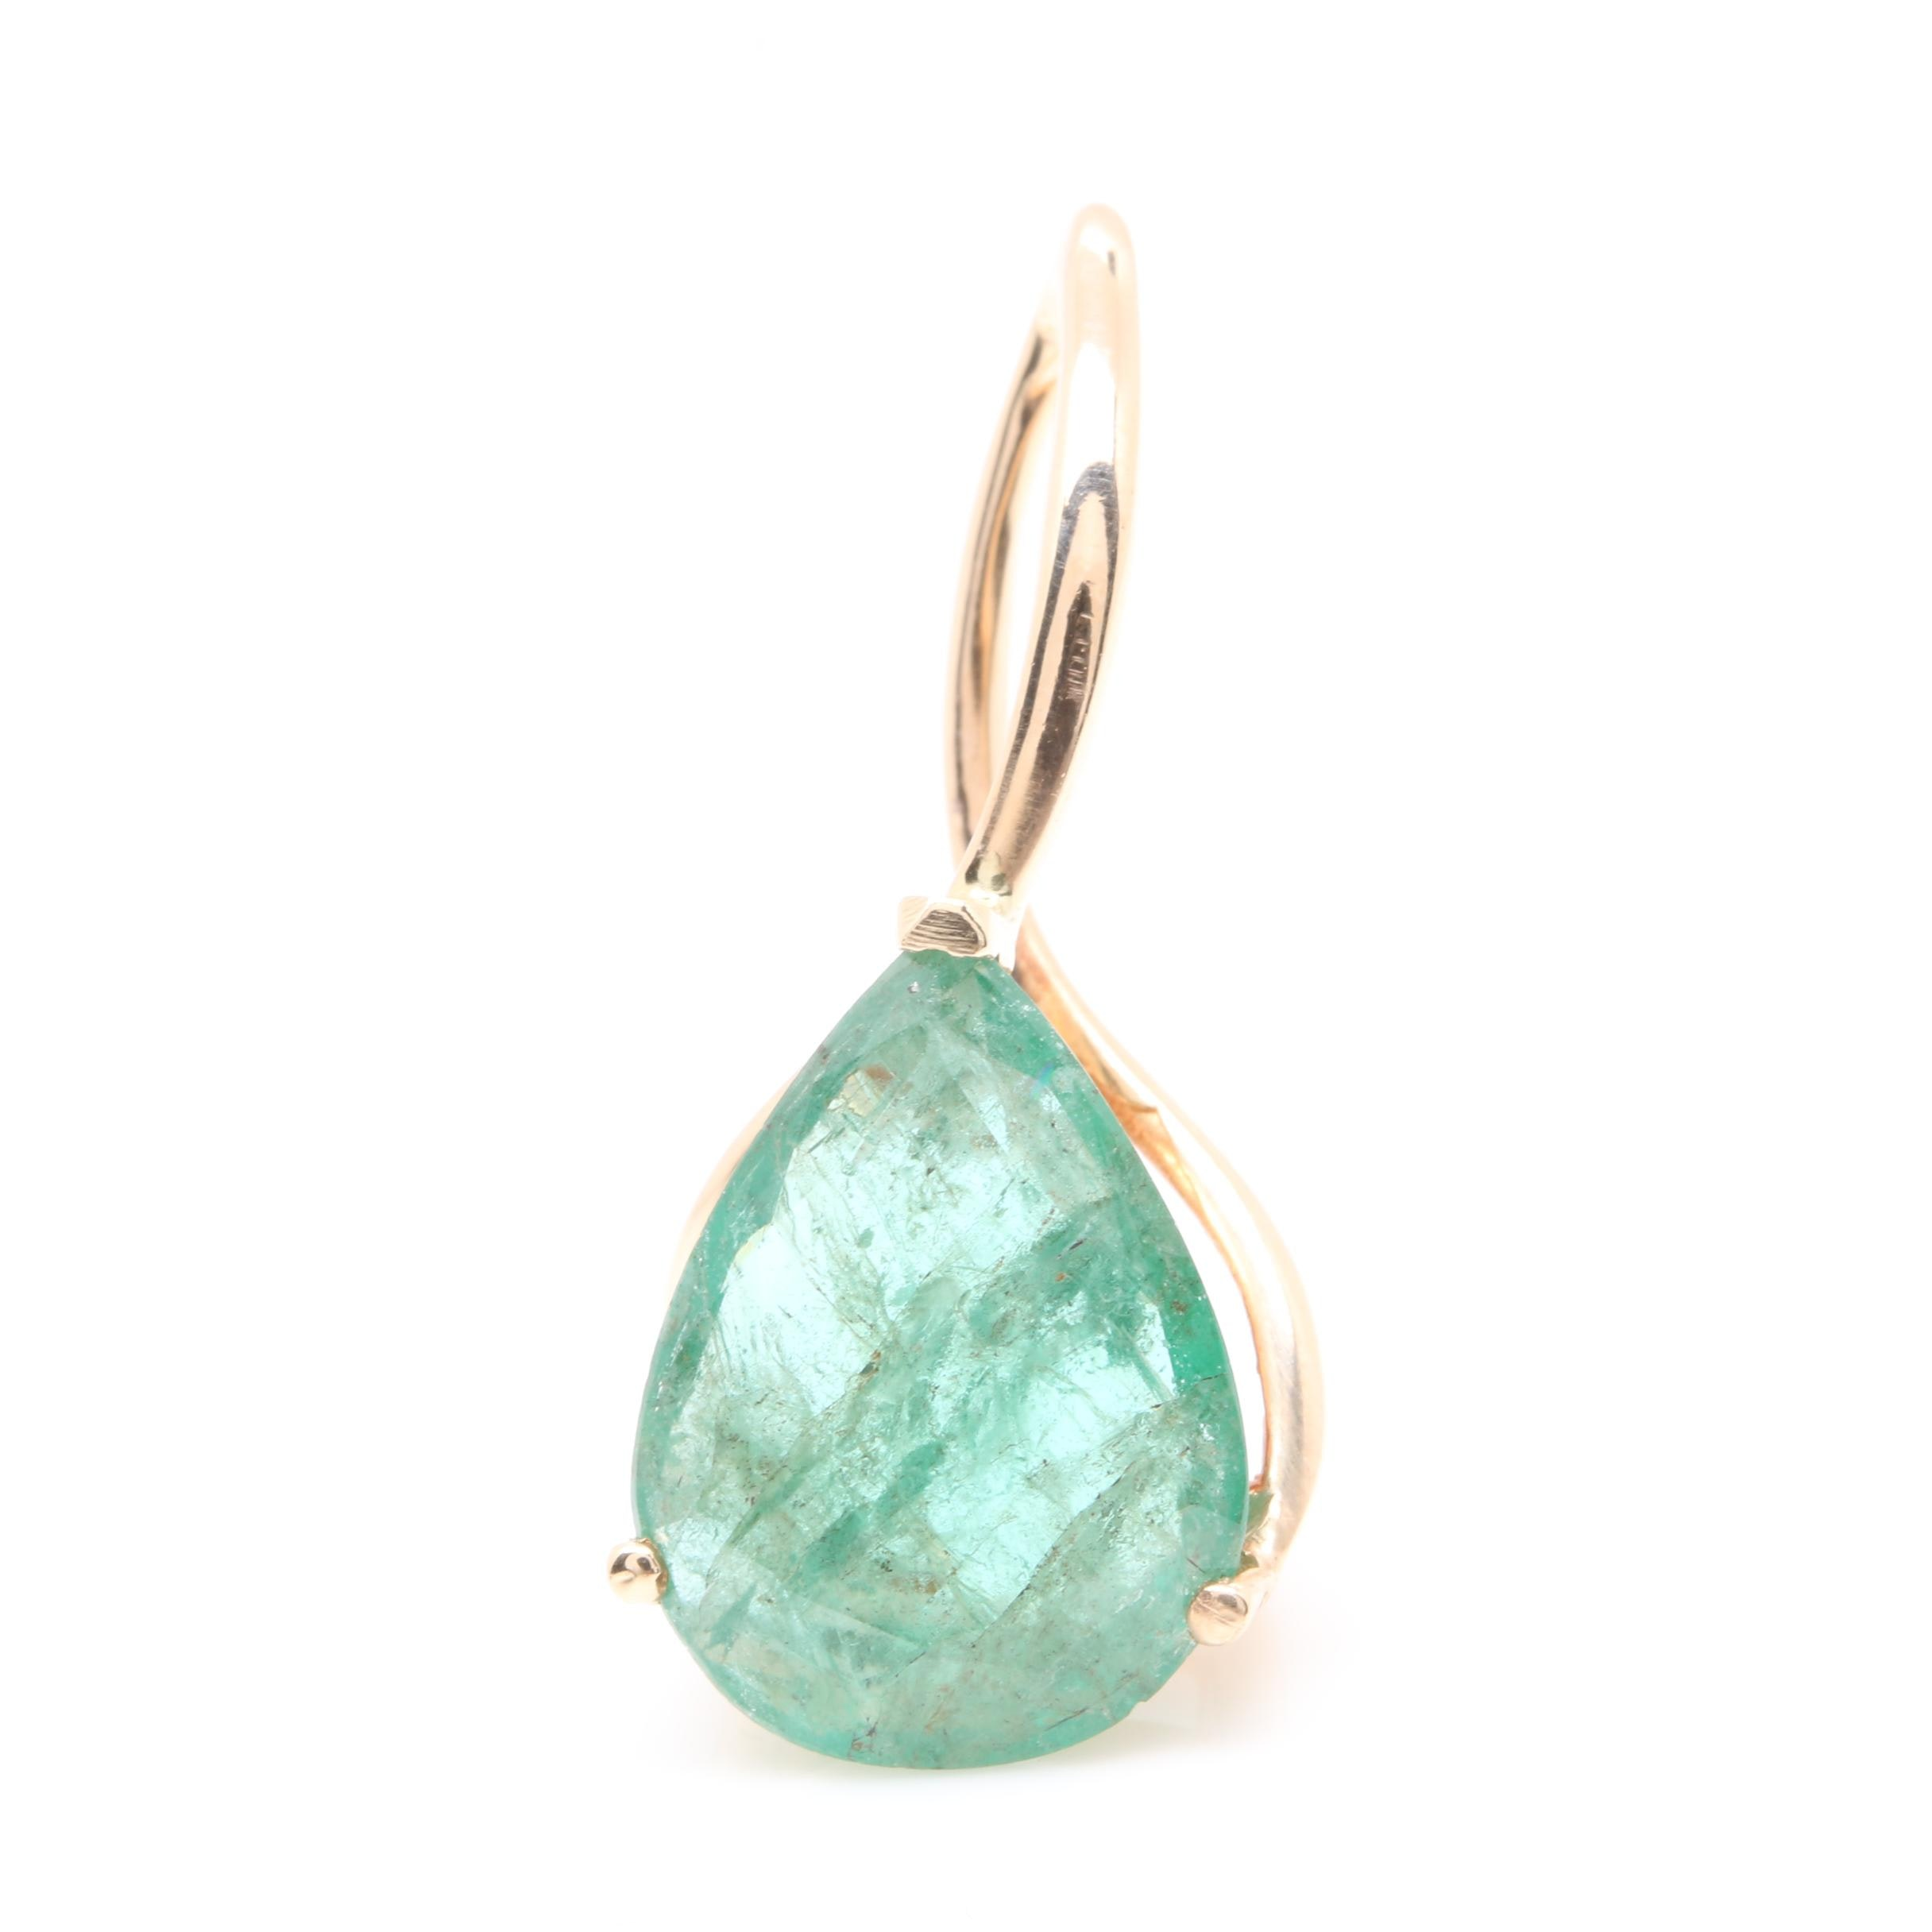 14K Yellow Gold 2.42 CT Emerald Pendant